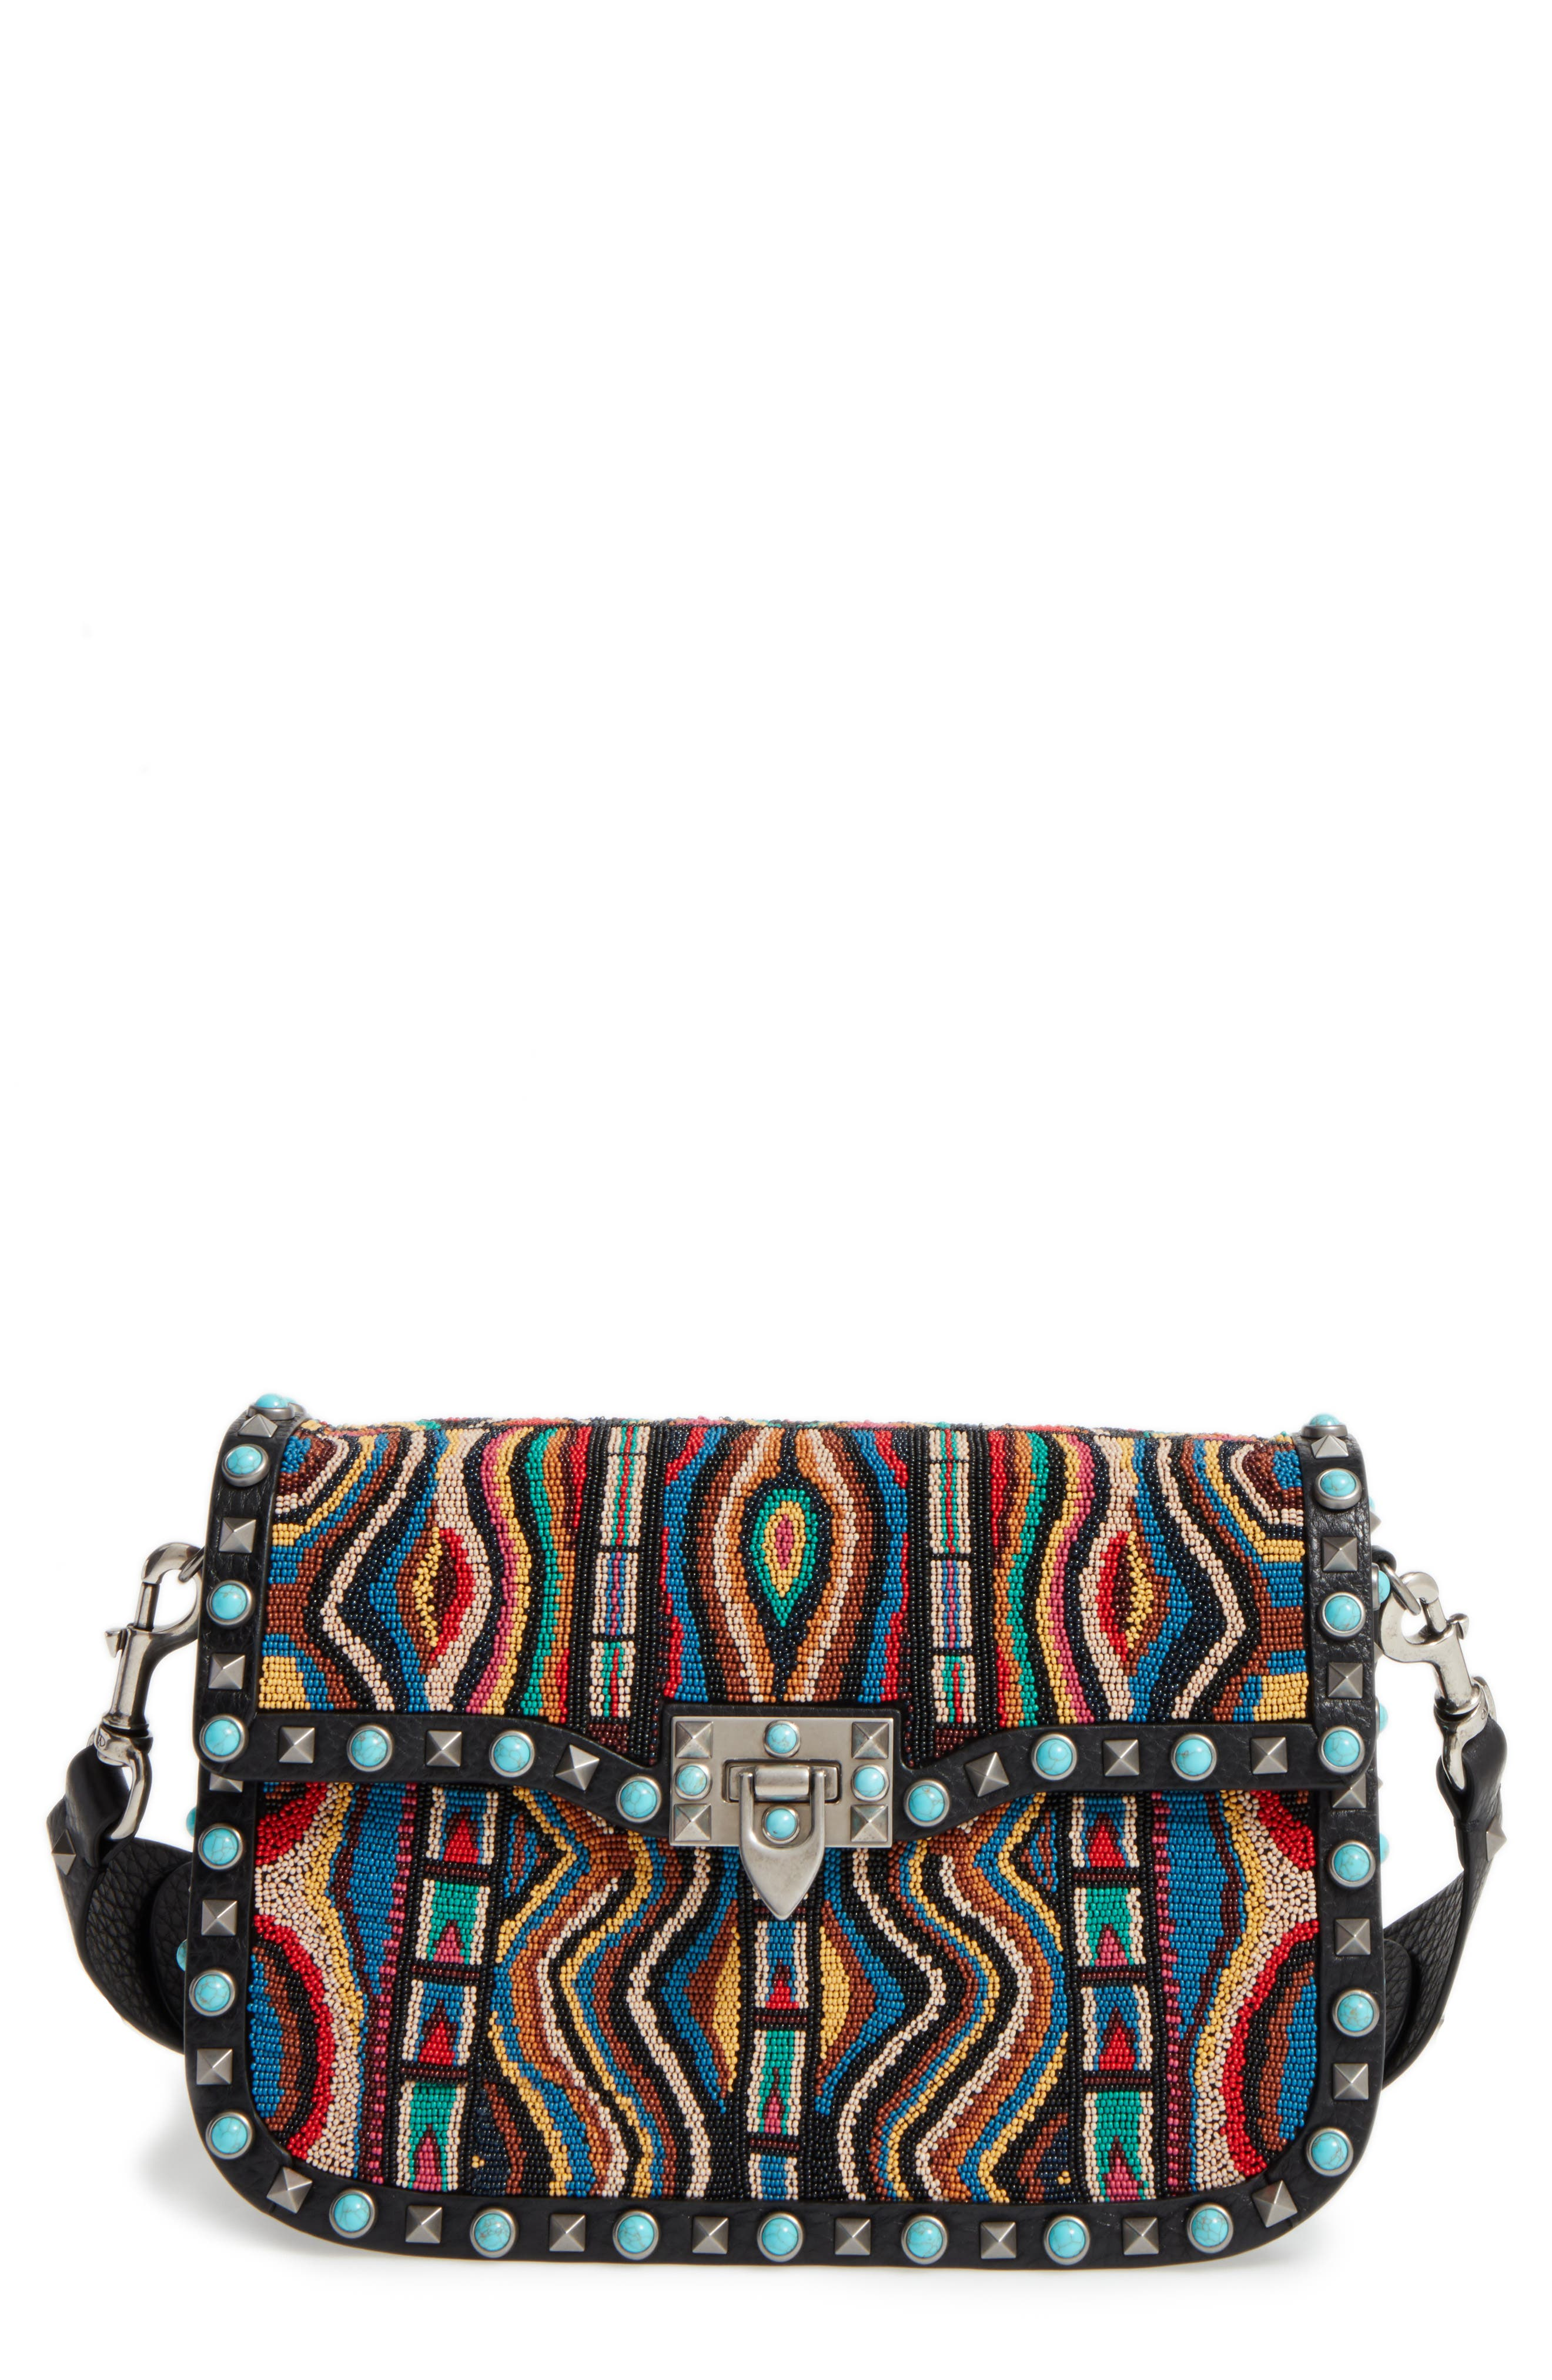 Valentino Rockstud Rolling Beaded Shoulder Bag with Embroidered Guitar Strap,                             Main thumbnail 1, color,                             001